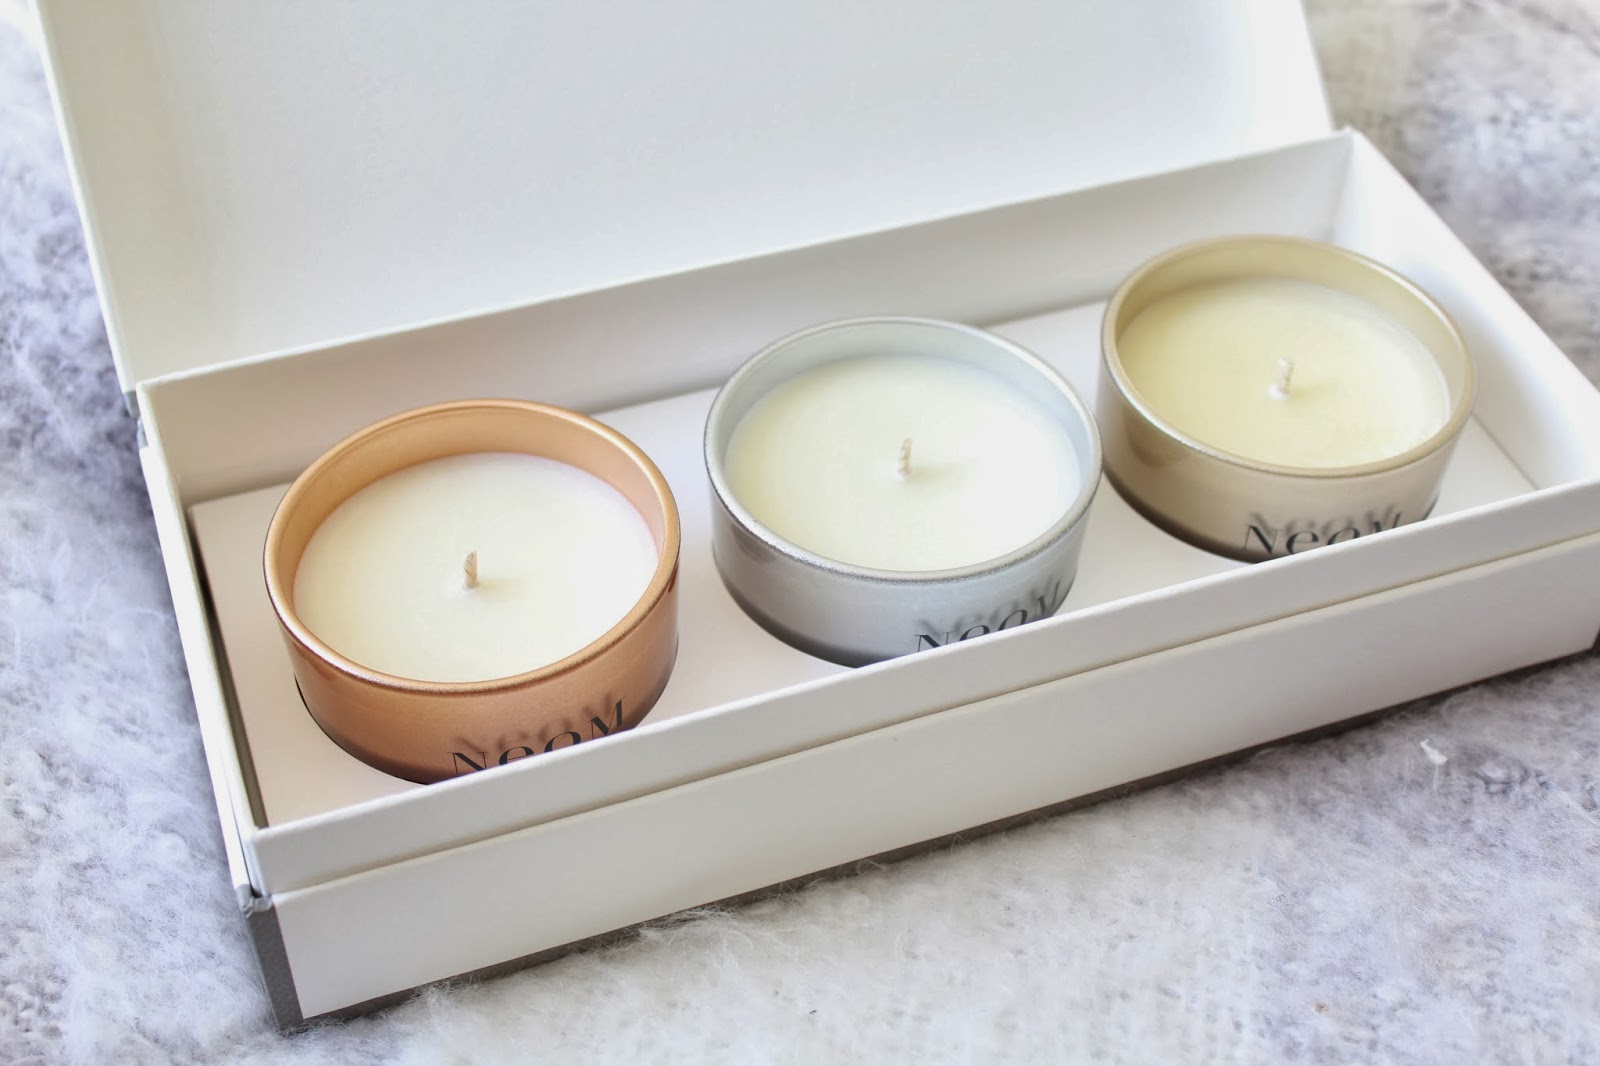 The Neom Scents of Christmas Candles